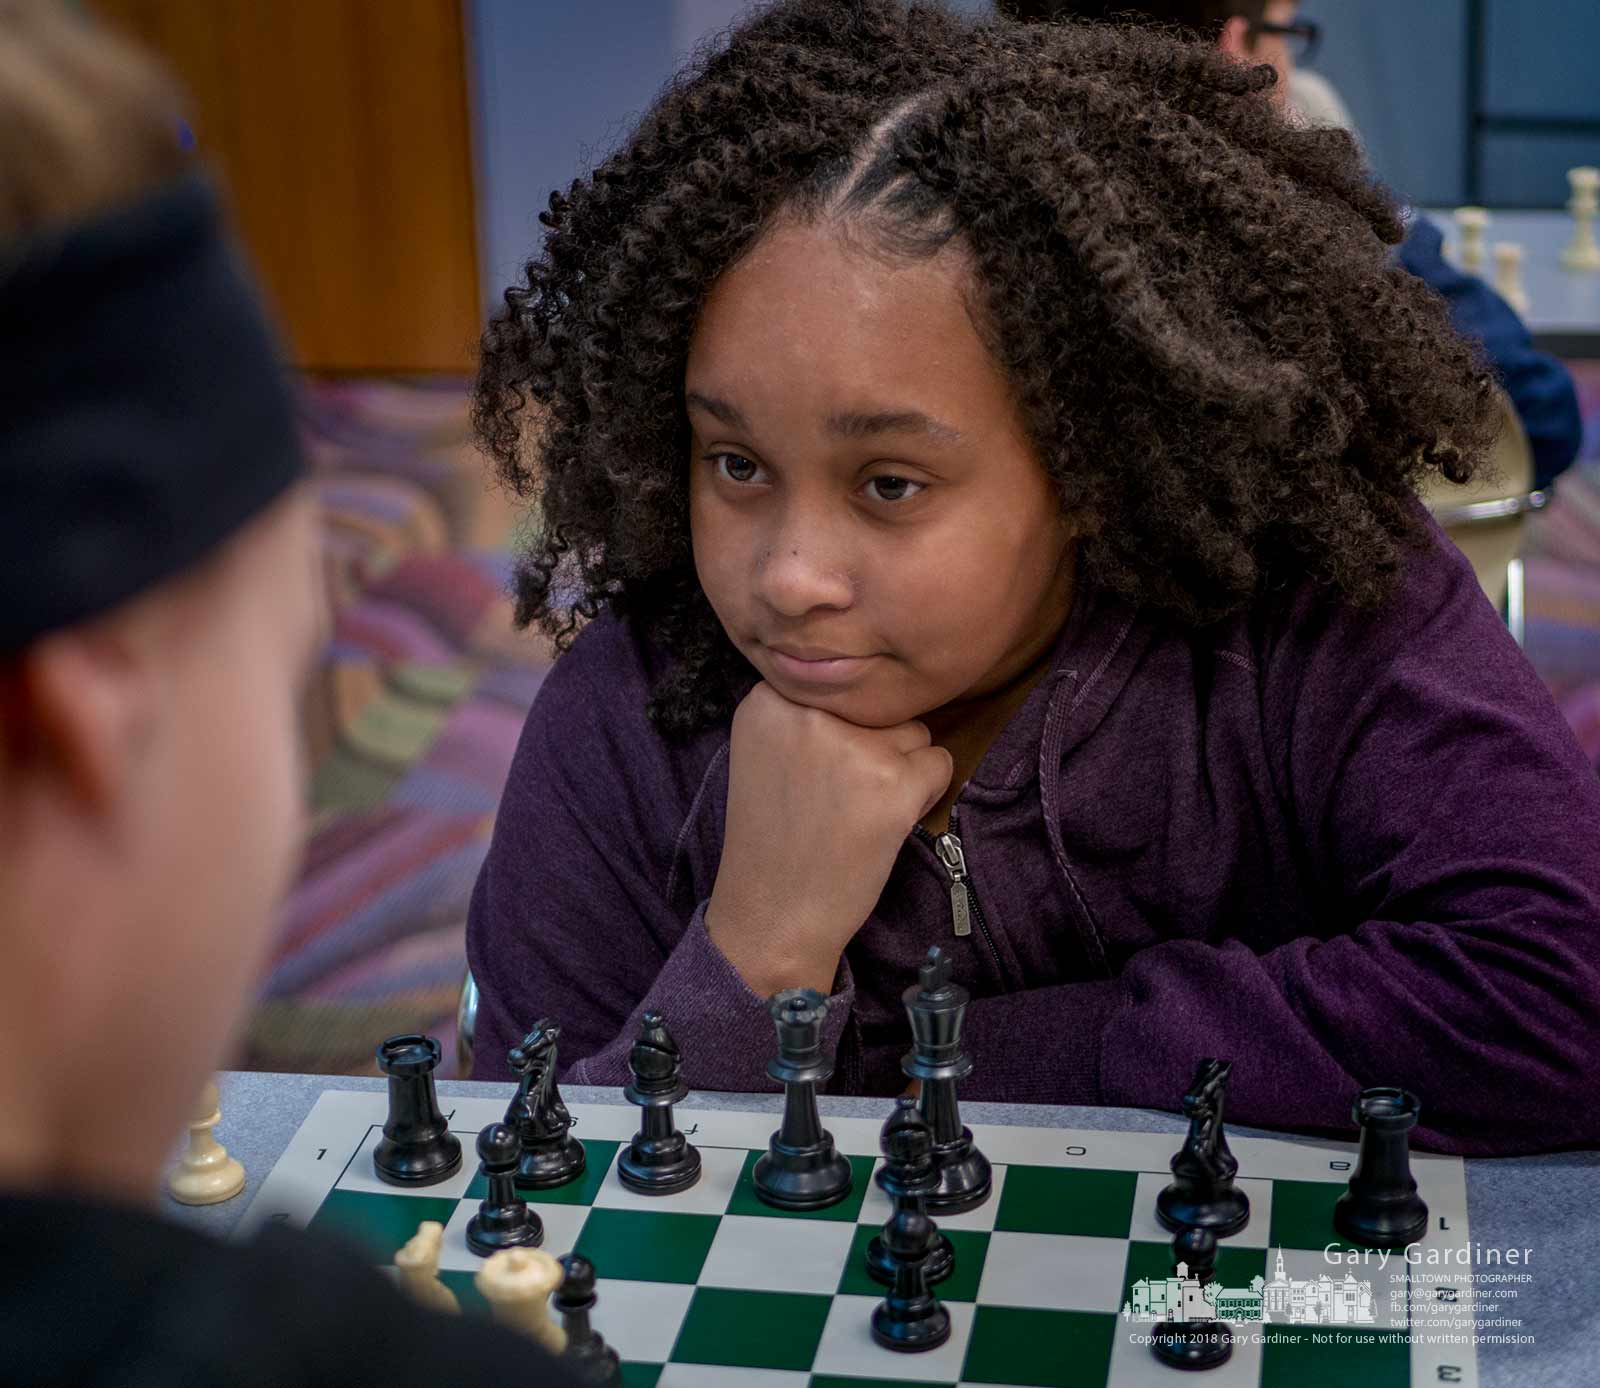 Jordan Hogans studies her chess opponent after making her move during a chess club meeting at the Westerville Public Library. My Final Photo for April 14, 2018.